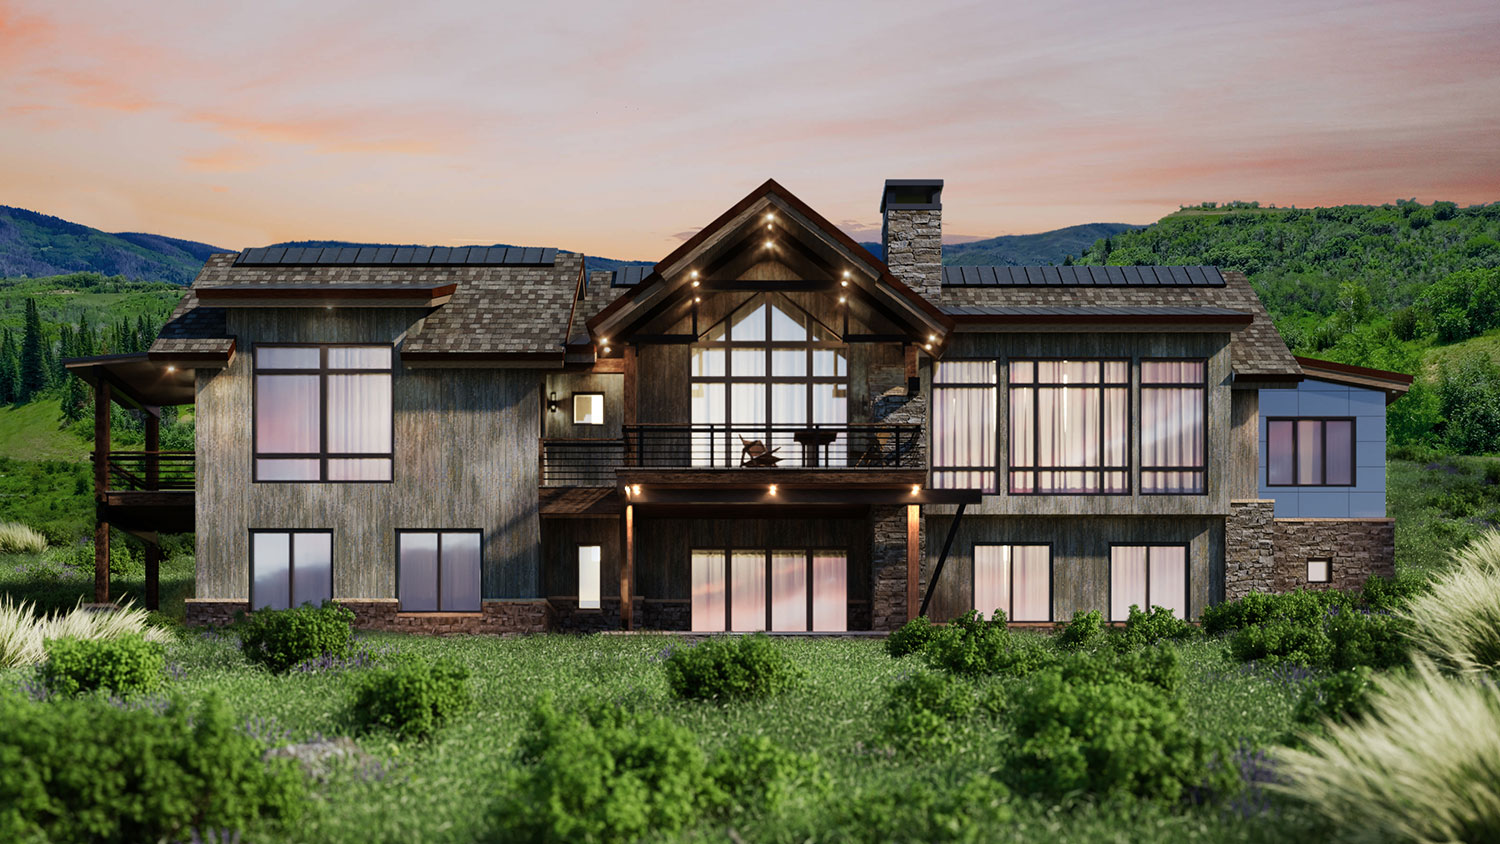 lot 44 spring 1 - Construction Booms at Luxury Rural Ranch